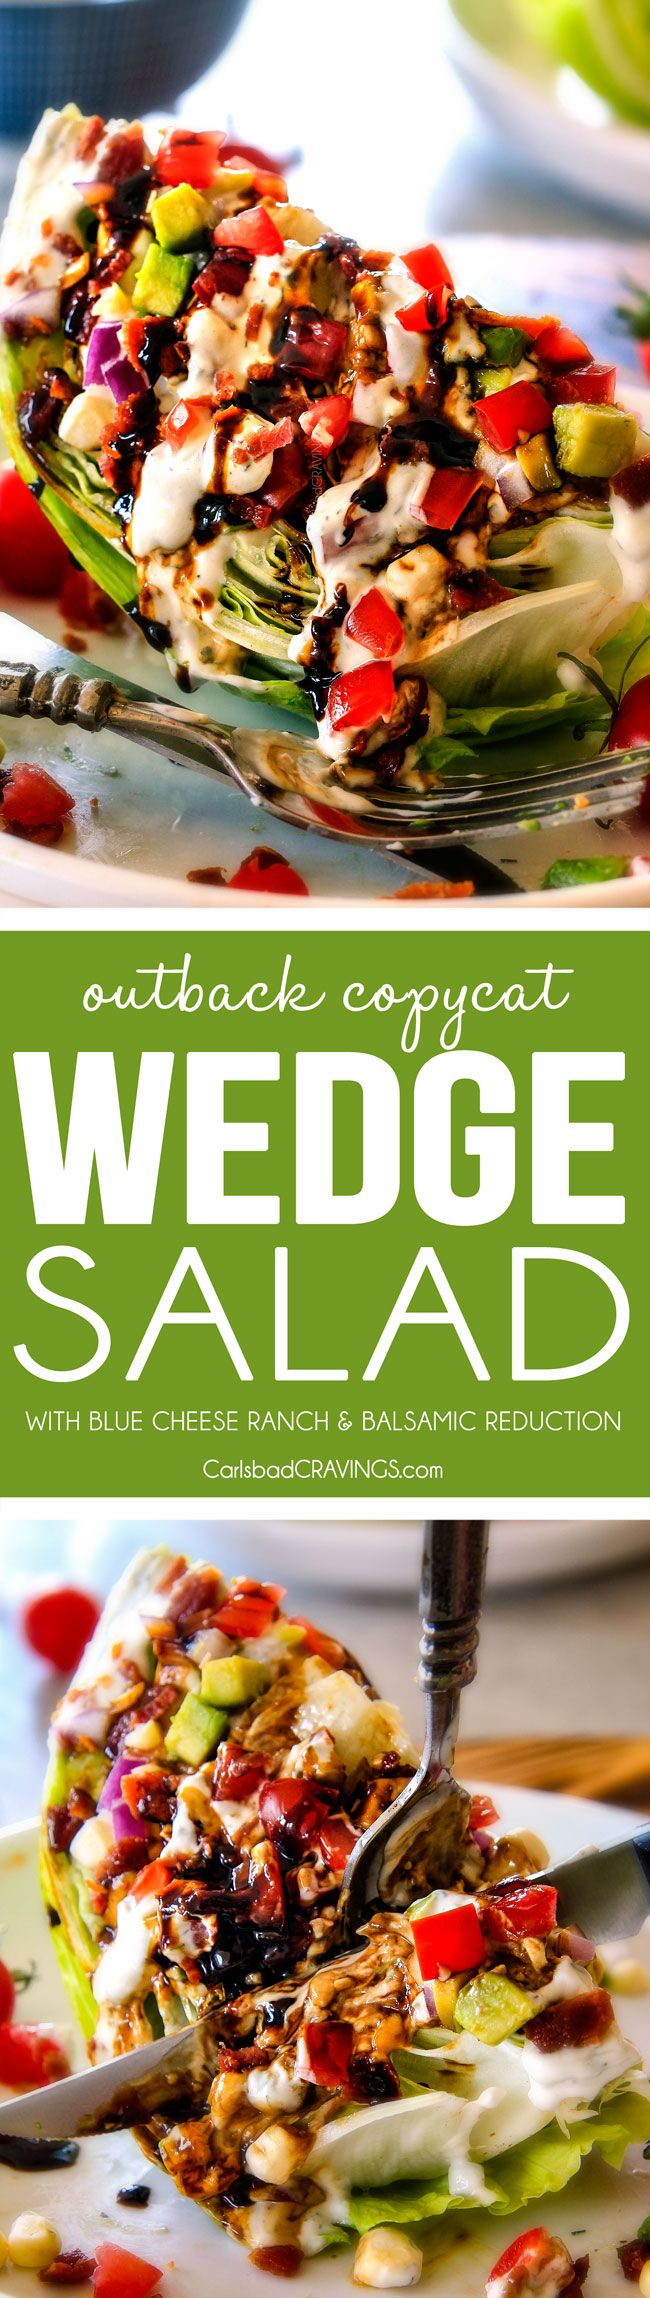 Outback Copycat Wedge Salad smothered in the most amazing creamy, decadent Blue Cheese Ranch and Balsamic Reduction is a flavor/texture lovers dream and crazy easy to make!